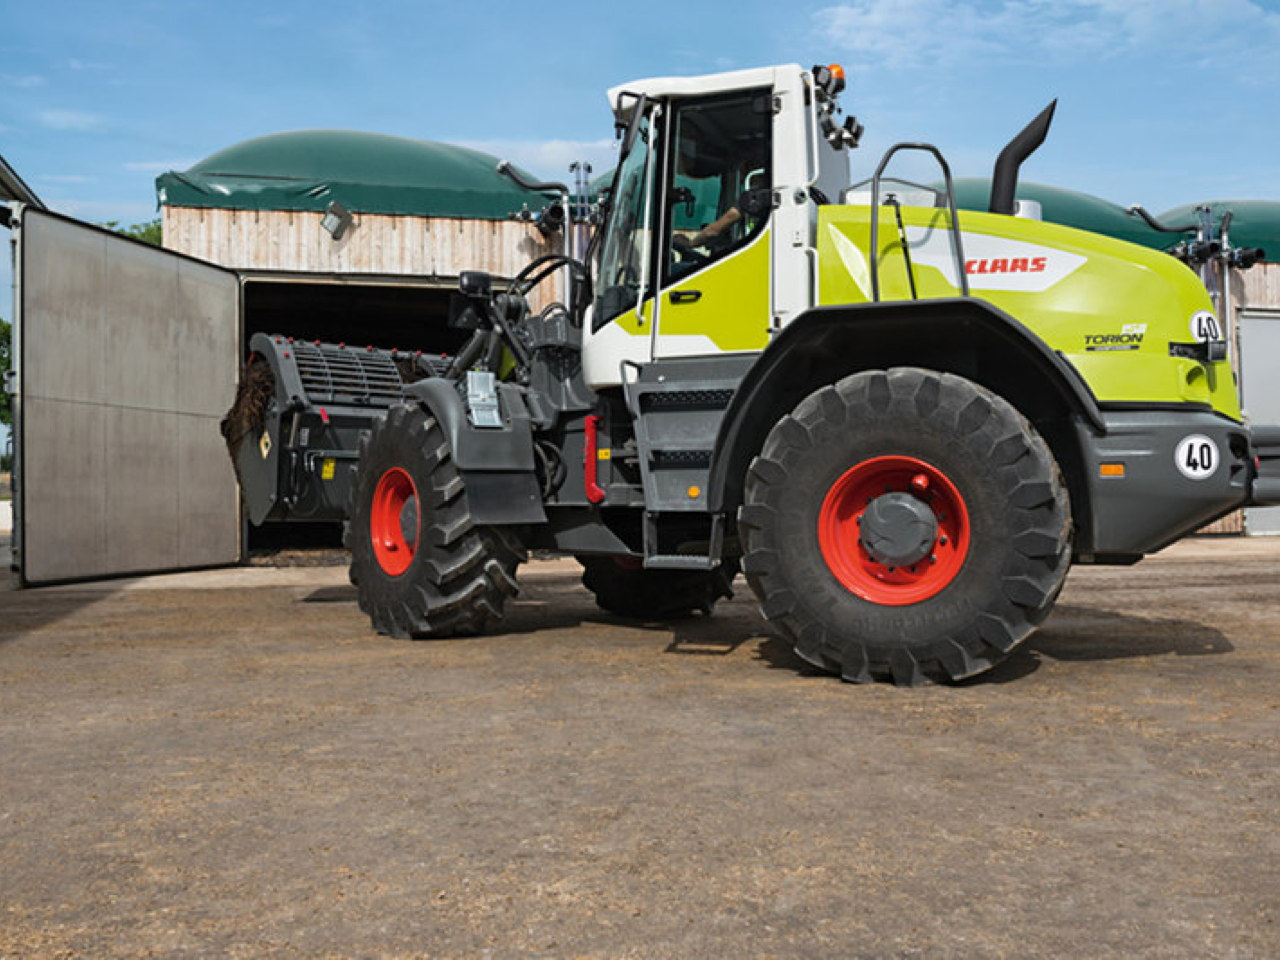 Claas Torion 1914-1177 Torion 1812